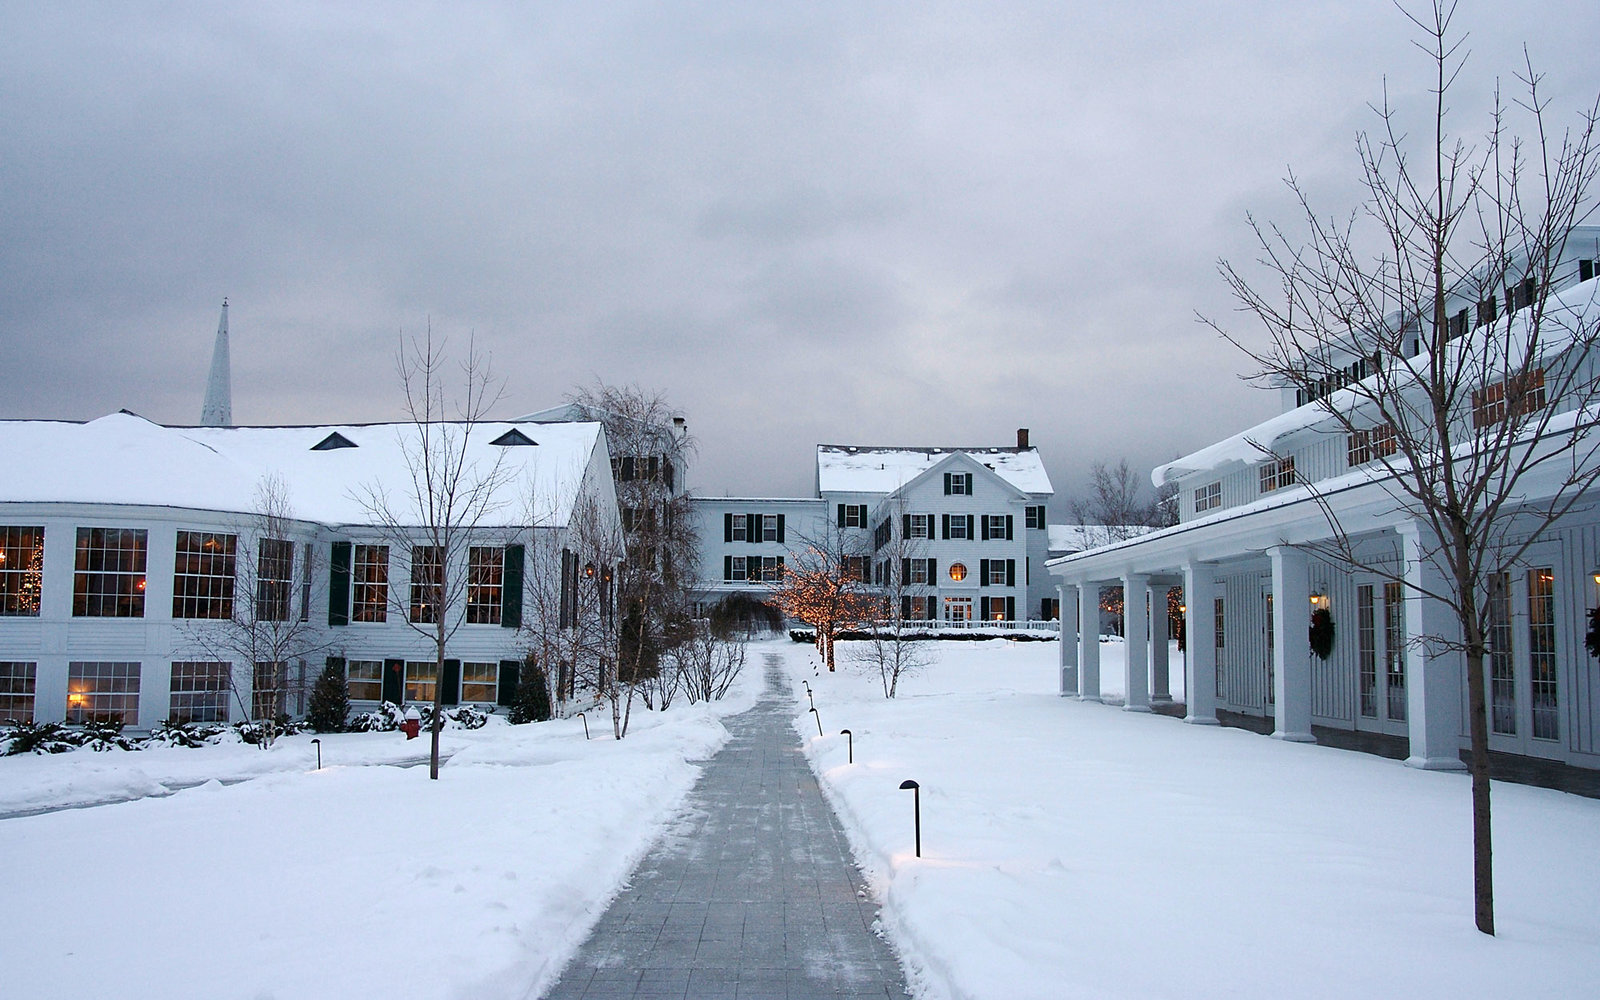 American Horror Story Style Hotel Vermont